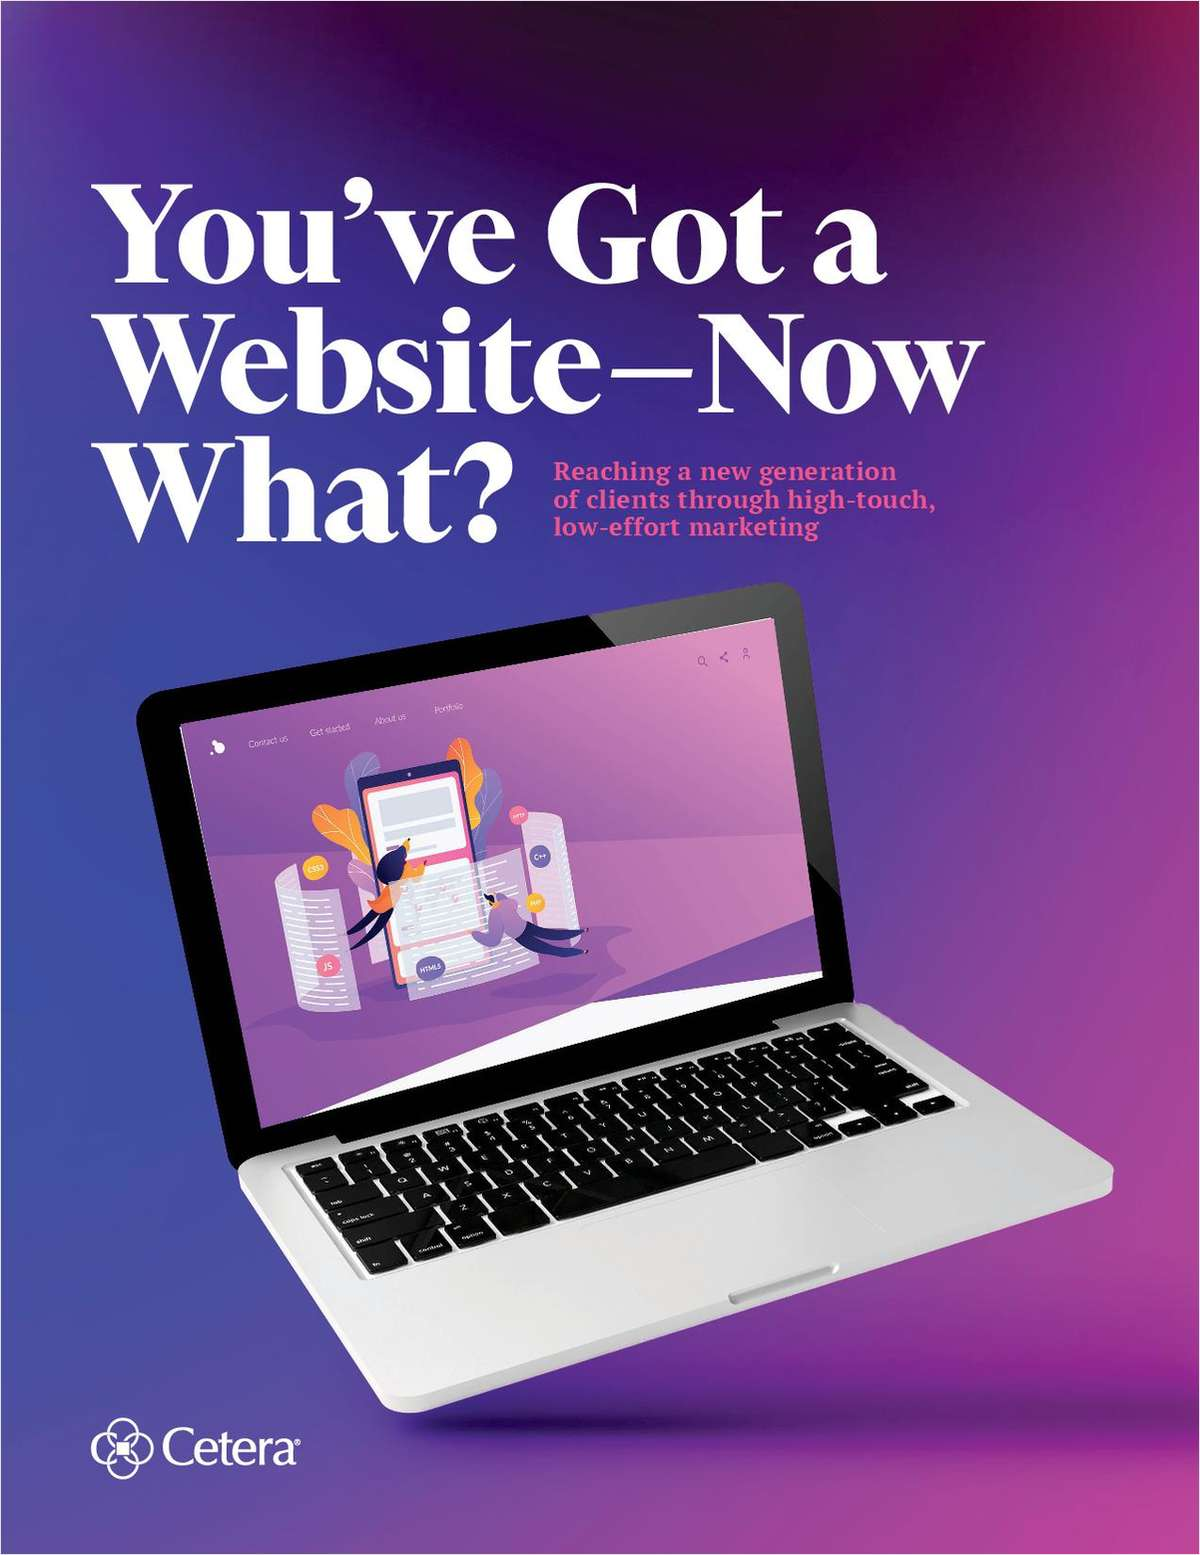 You've Got a Website -- Now What?